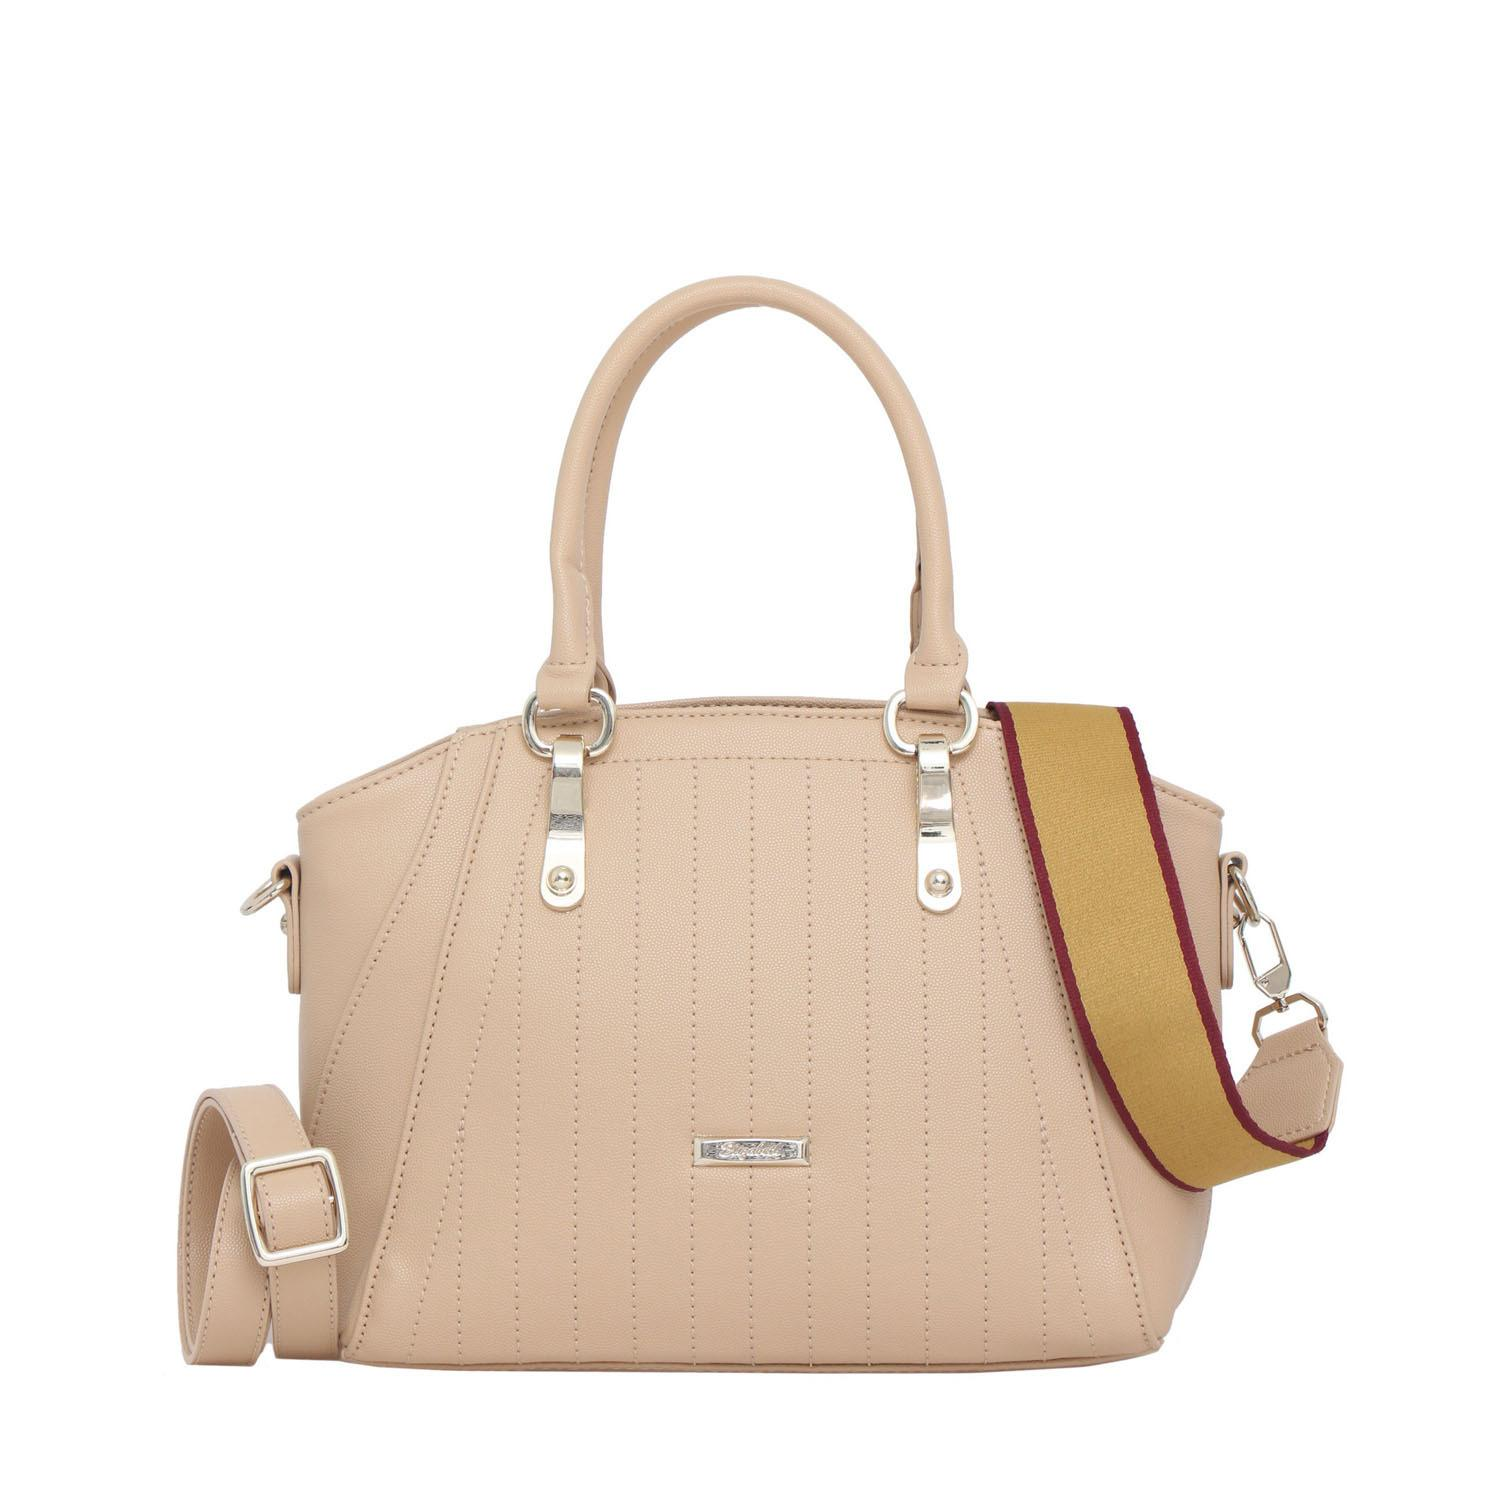 Elizabeth Bag Omarosa Handbag Cream